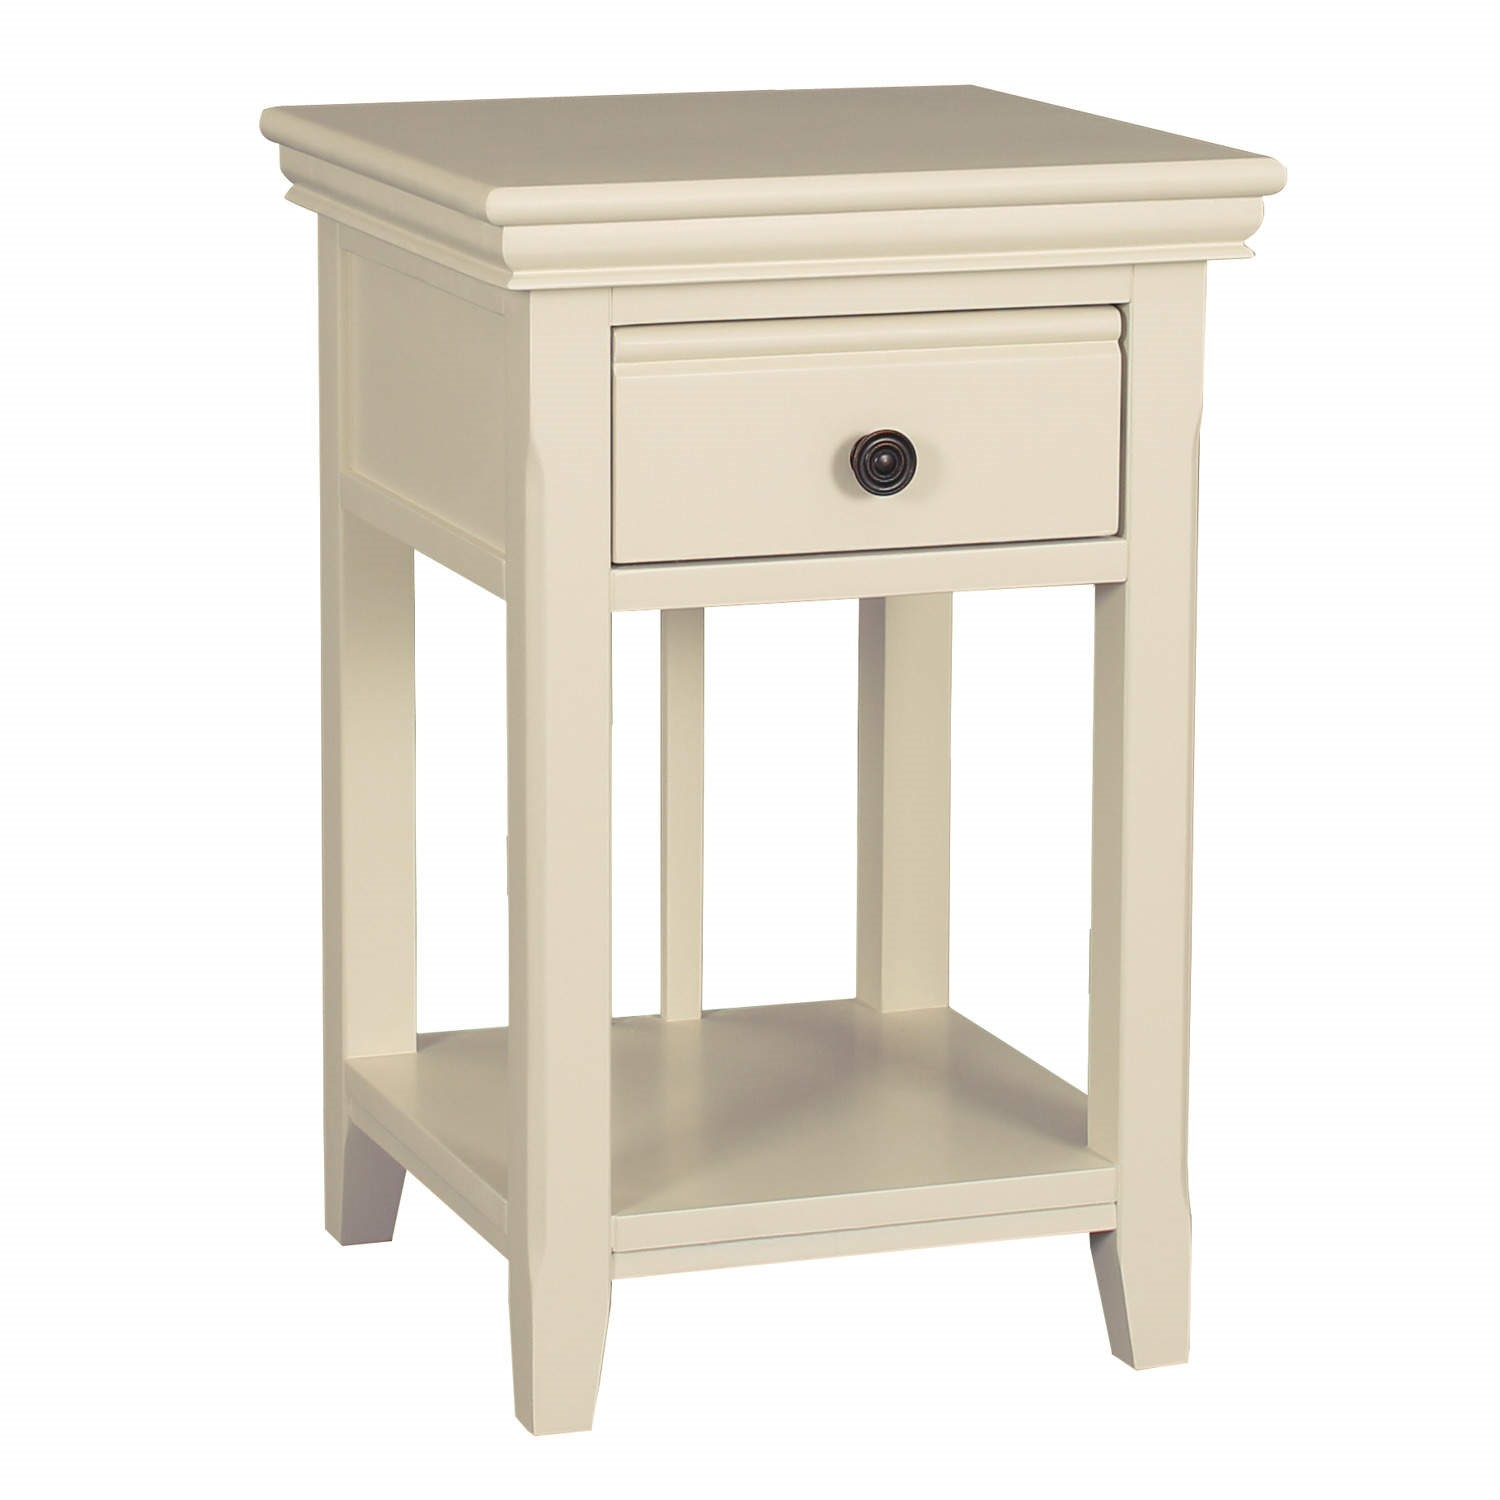 Pair Of Savannah Bedside Tables With Drawer In Ivory Cream Furniture123